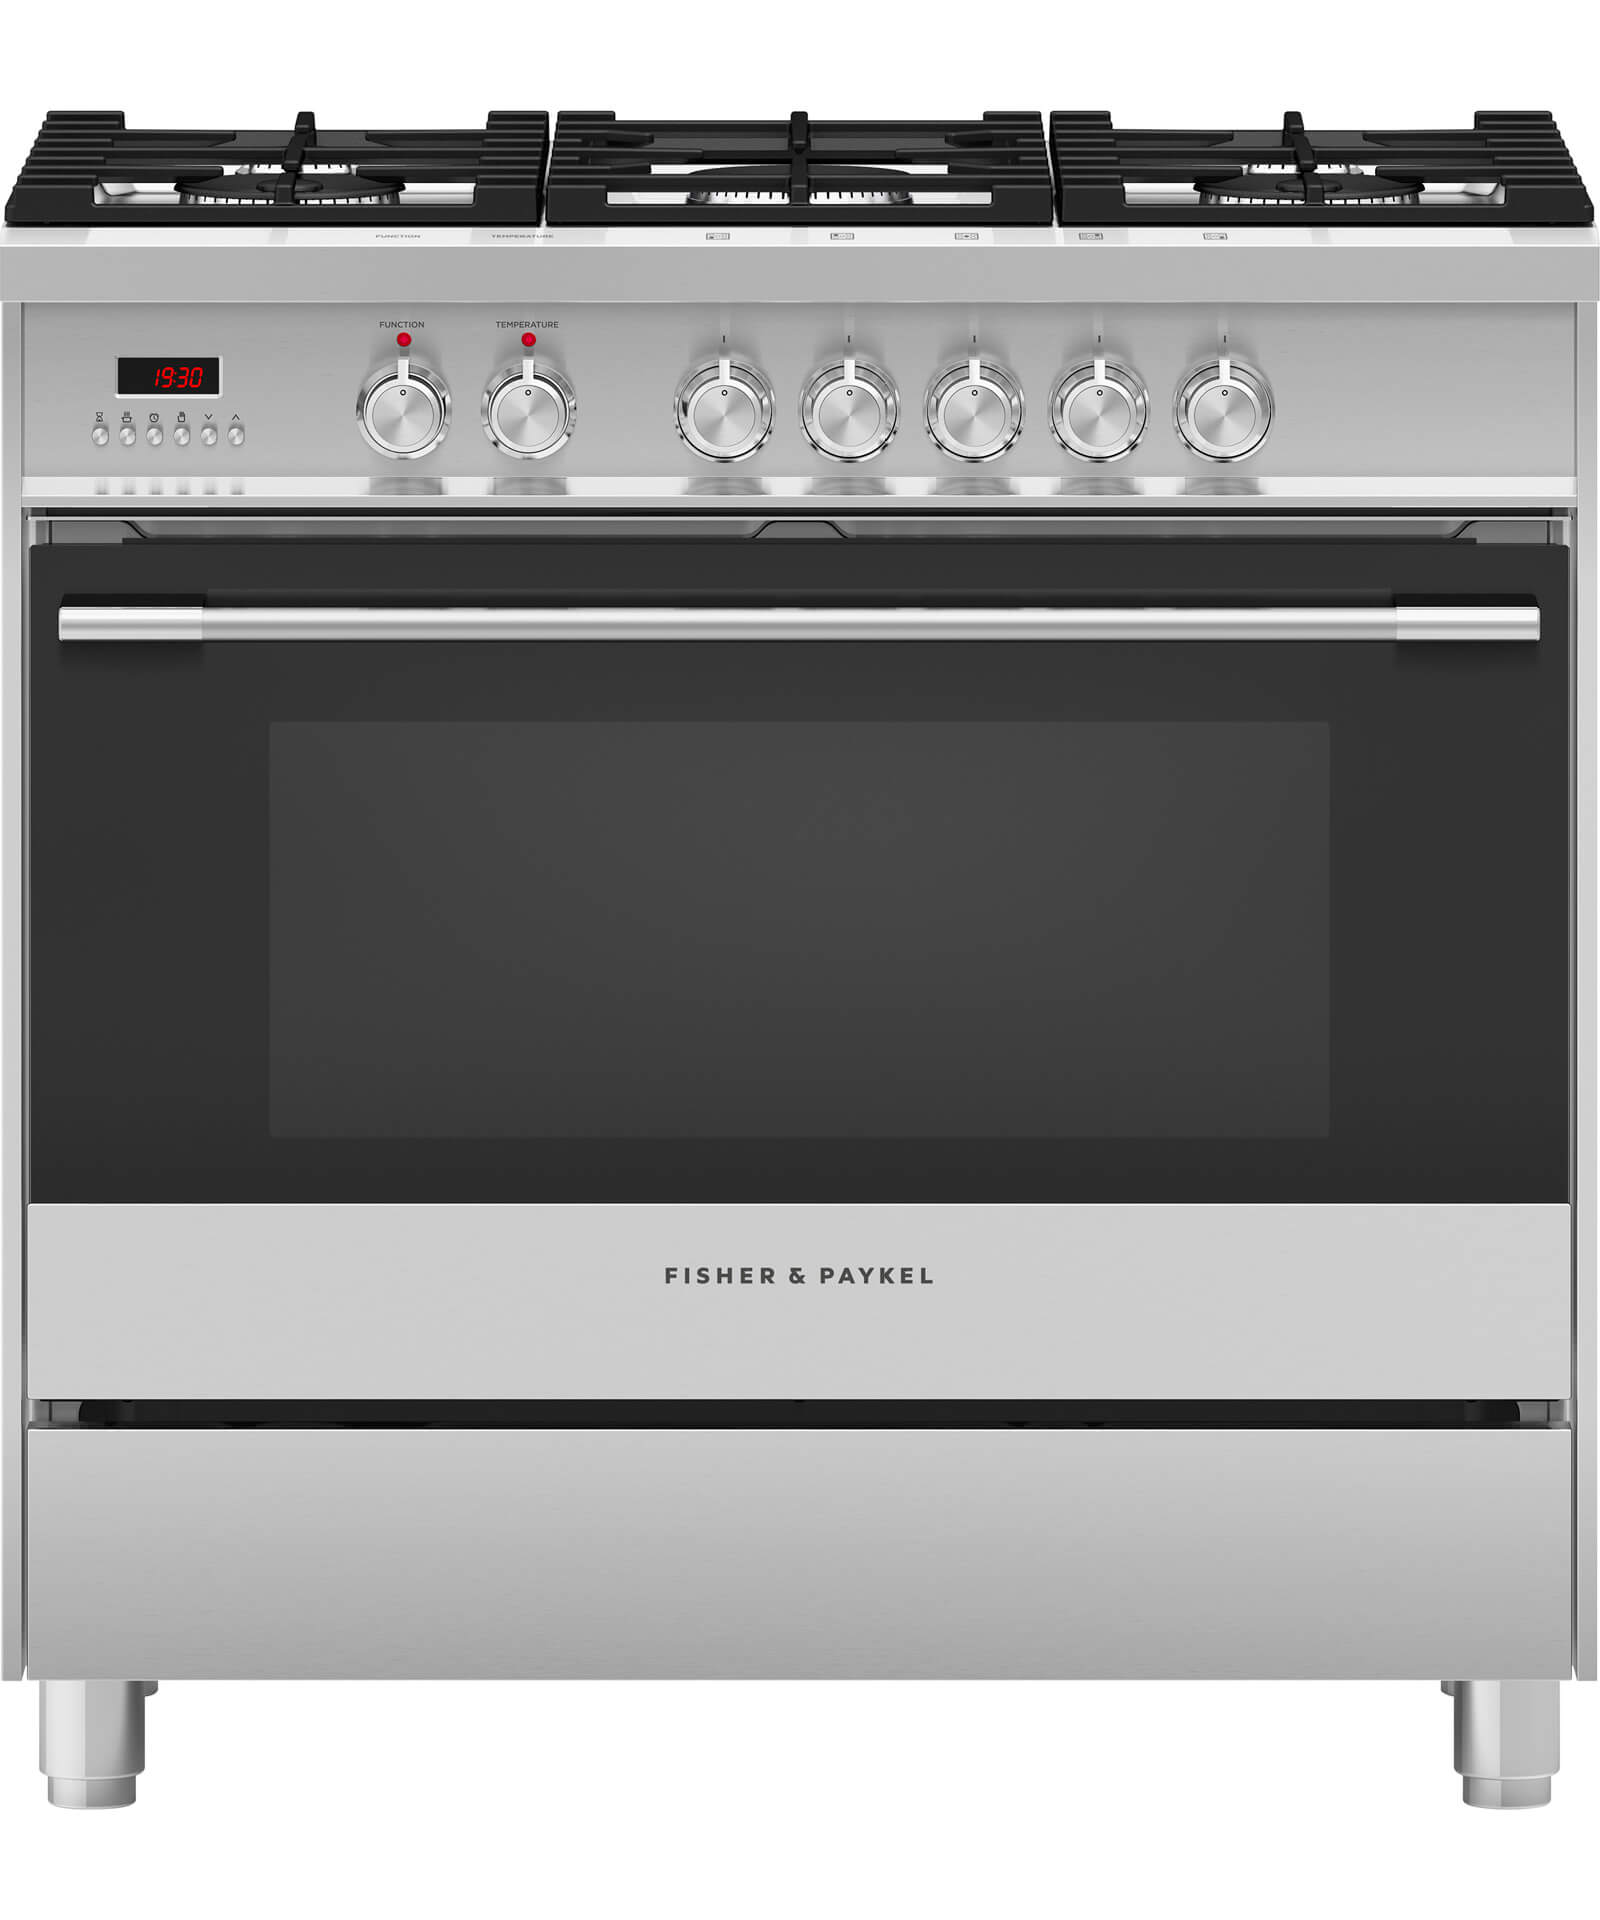 Peachy Or90Scg1X1 Freestanding Induction Cooker 90Cm Fisher Download Free Architecture Designs Itiscsunscenecom